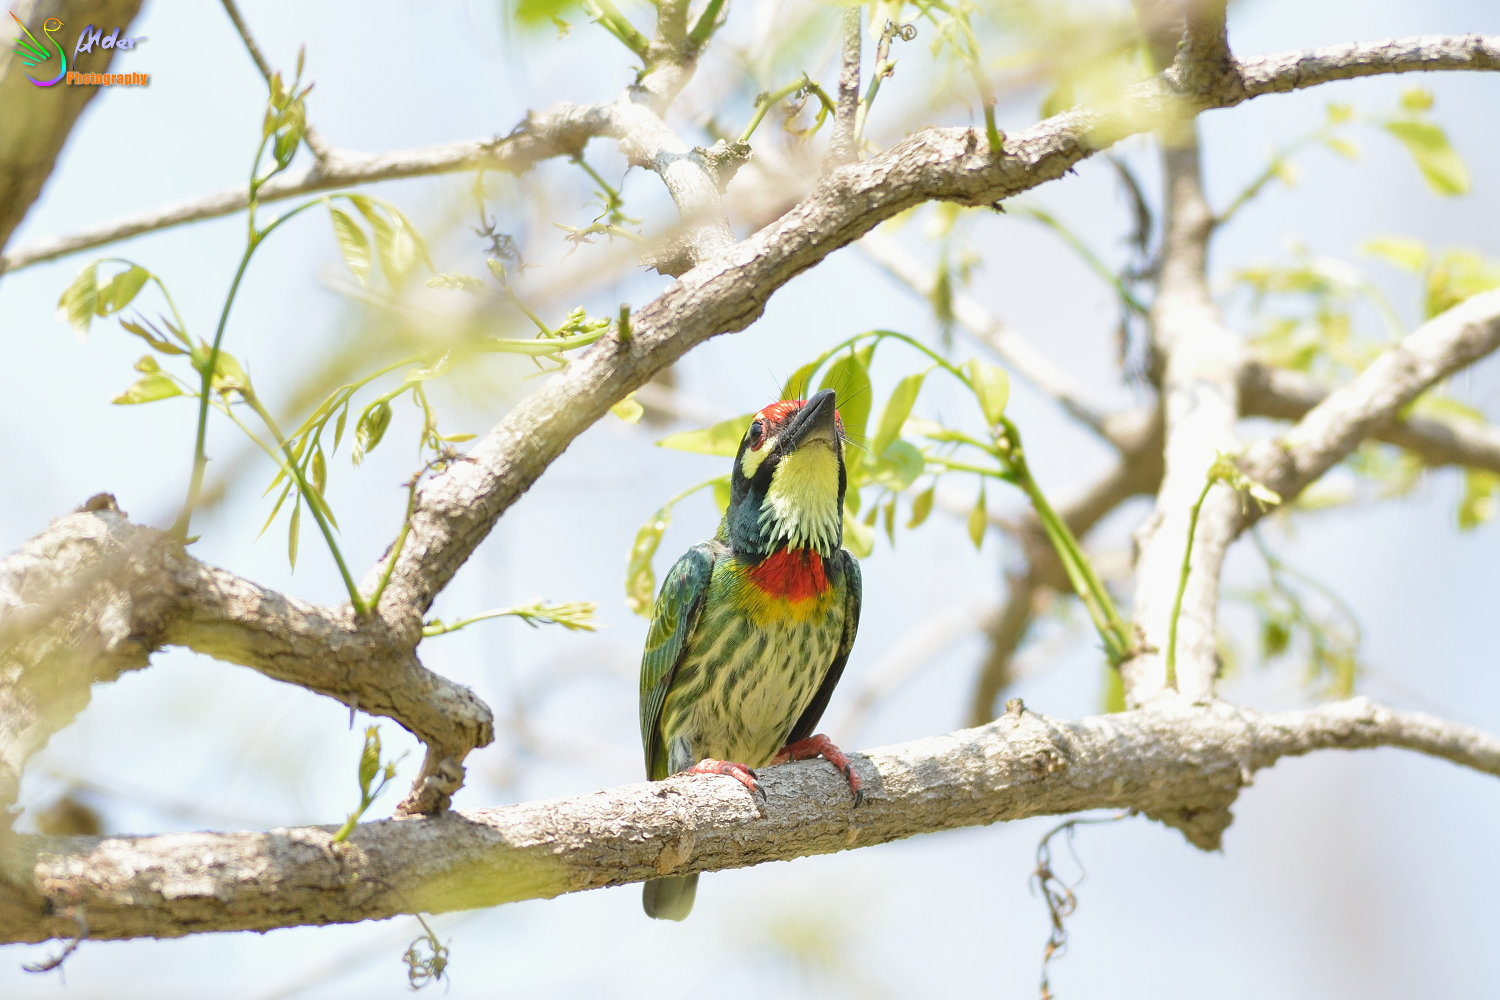 Coppersmith_Barbet_3102